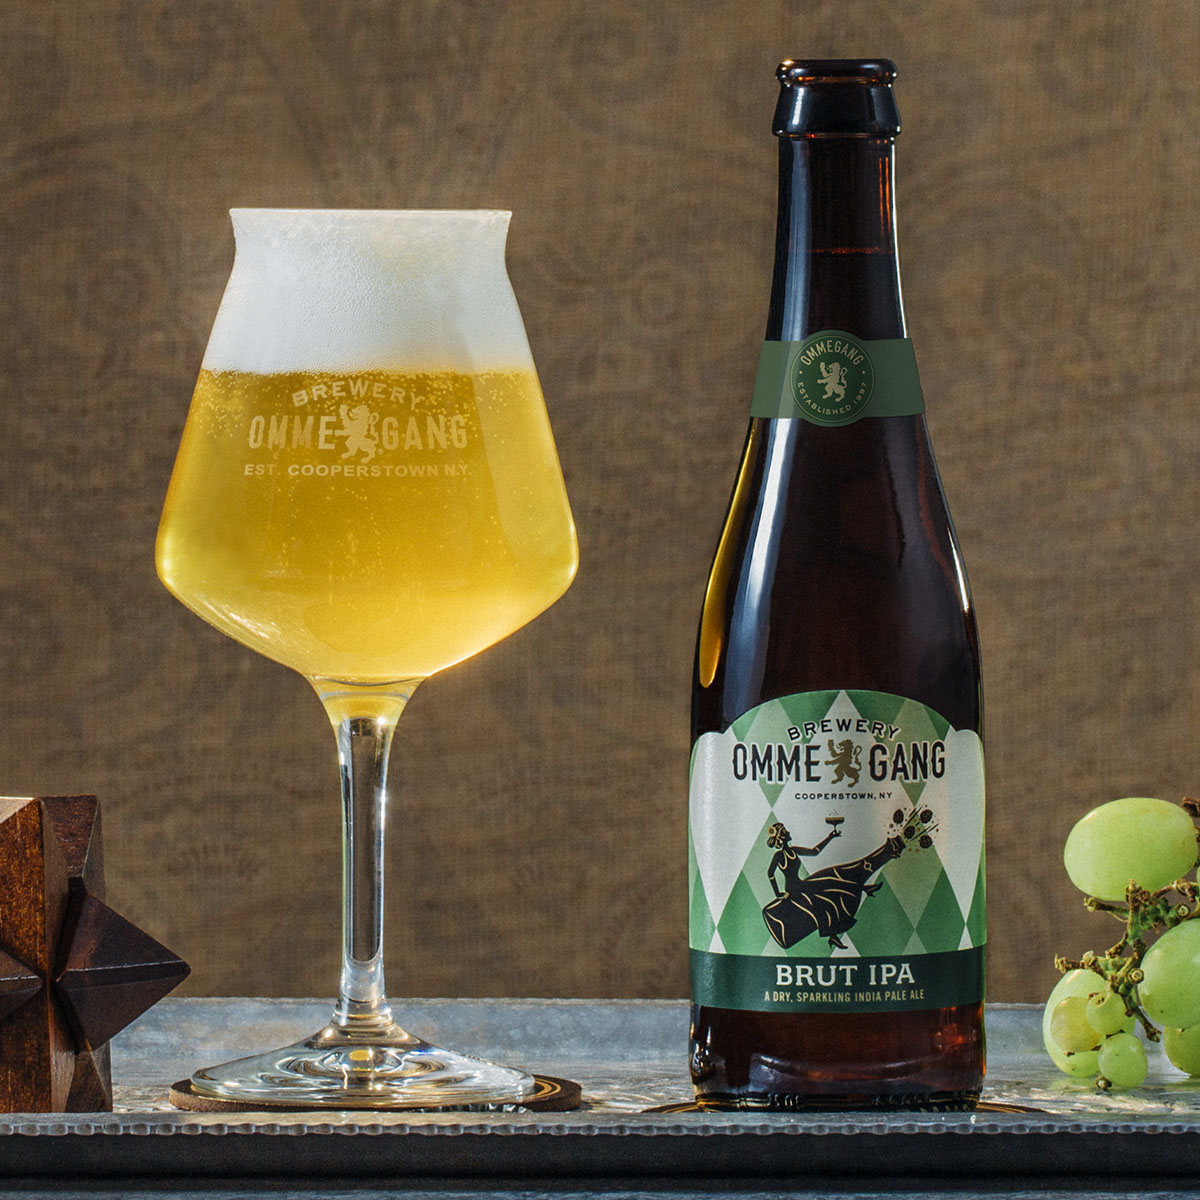 Not every Brut IPA is built the same